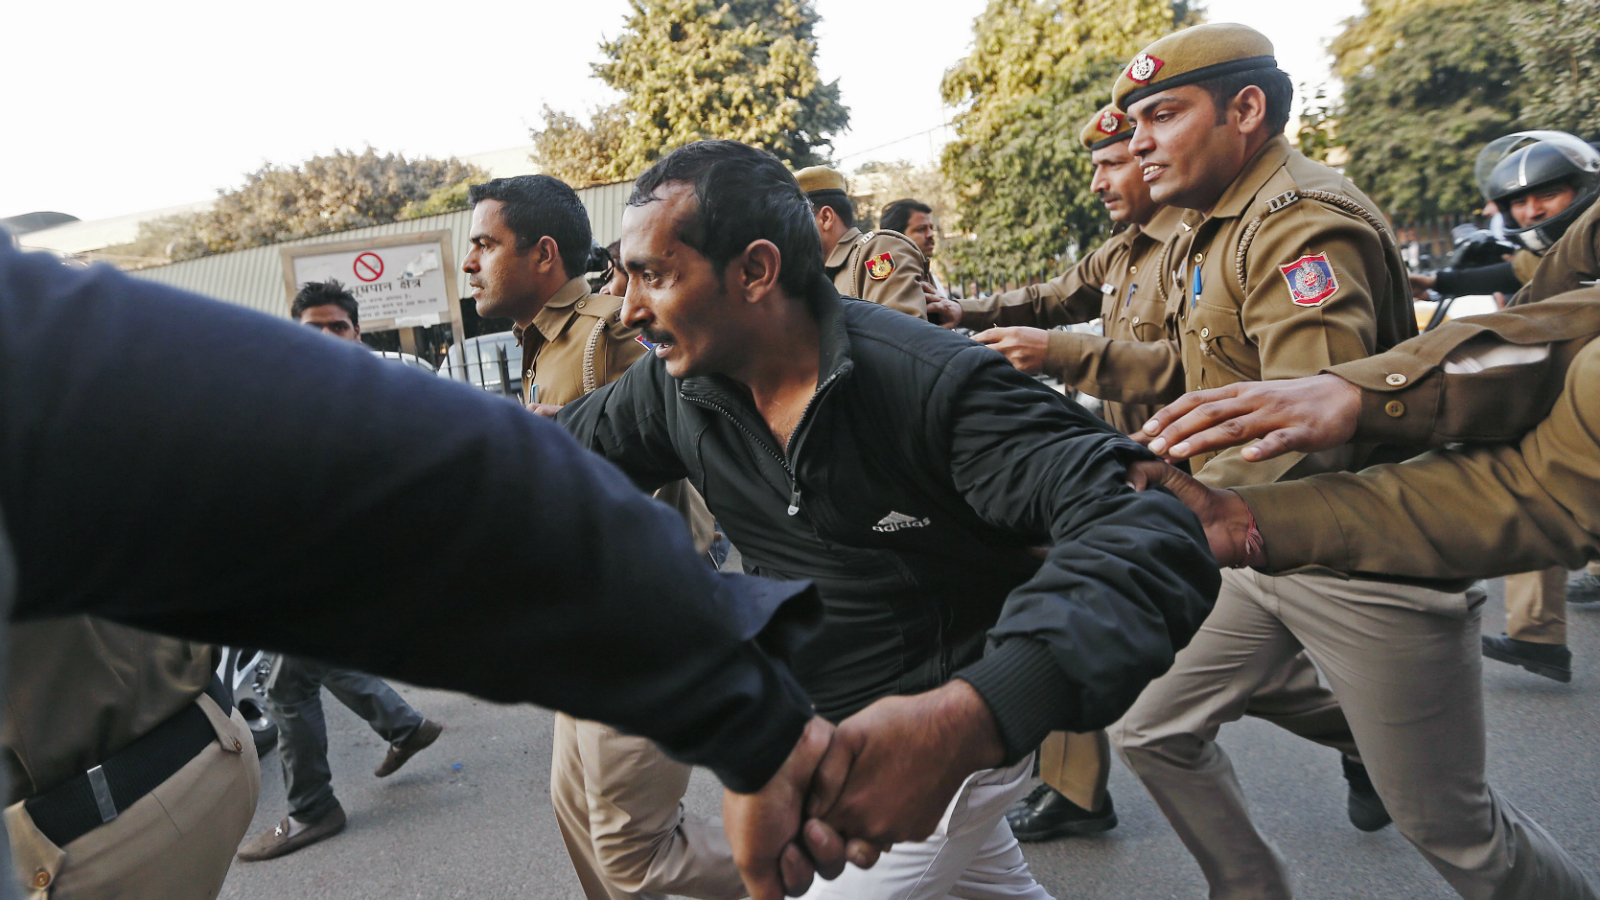 Policemen run along with driver Shiv Kumar Yadav (C) who is accused of a rape outside a court in New Delhi December 8, 2014. U.S. online ride-hailing service Uber has been banned from operating in the Indian capital after a female passenger accused one of its drivers of rape, a case that has reignited a debate about the safety of women in the South Asian nation. REUTERS/Adnan Abidi (INDIA - Tags: CRIME LAW BUSINESS TRANSPORT TPX IMAGES OF THE DAY)